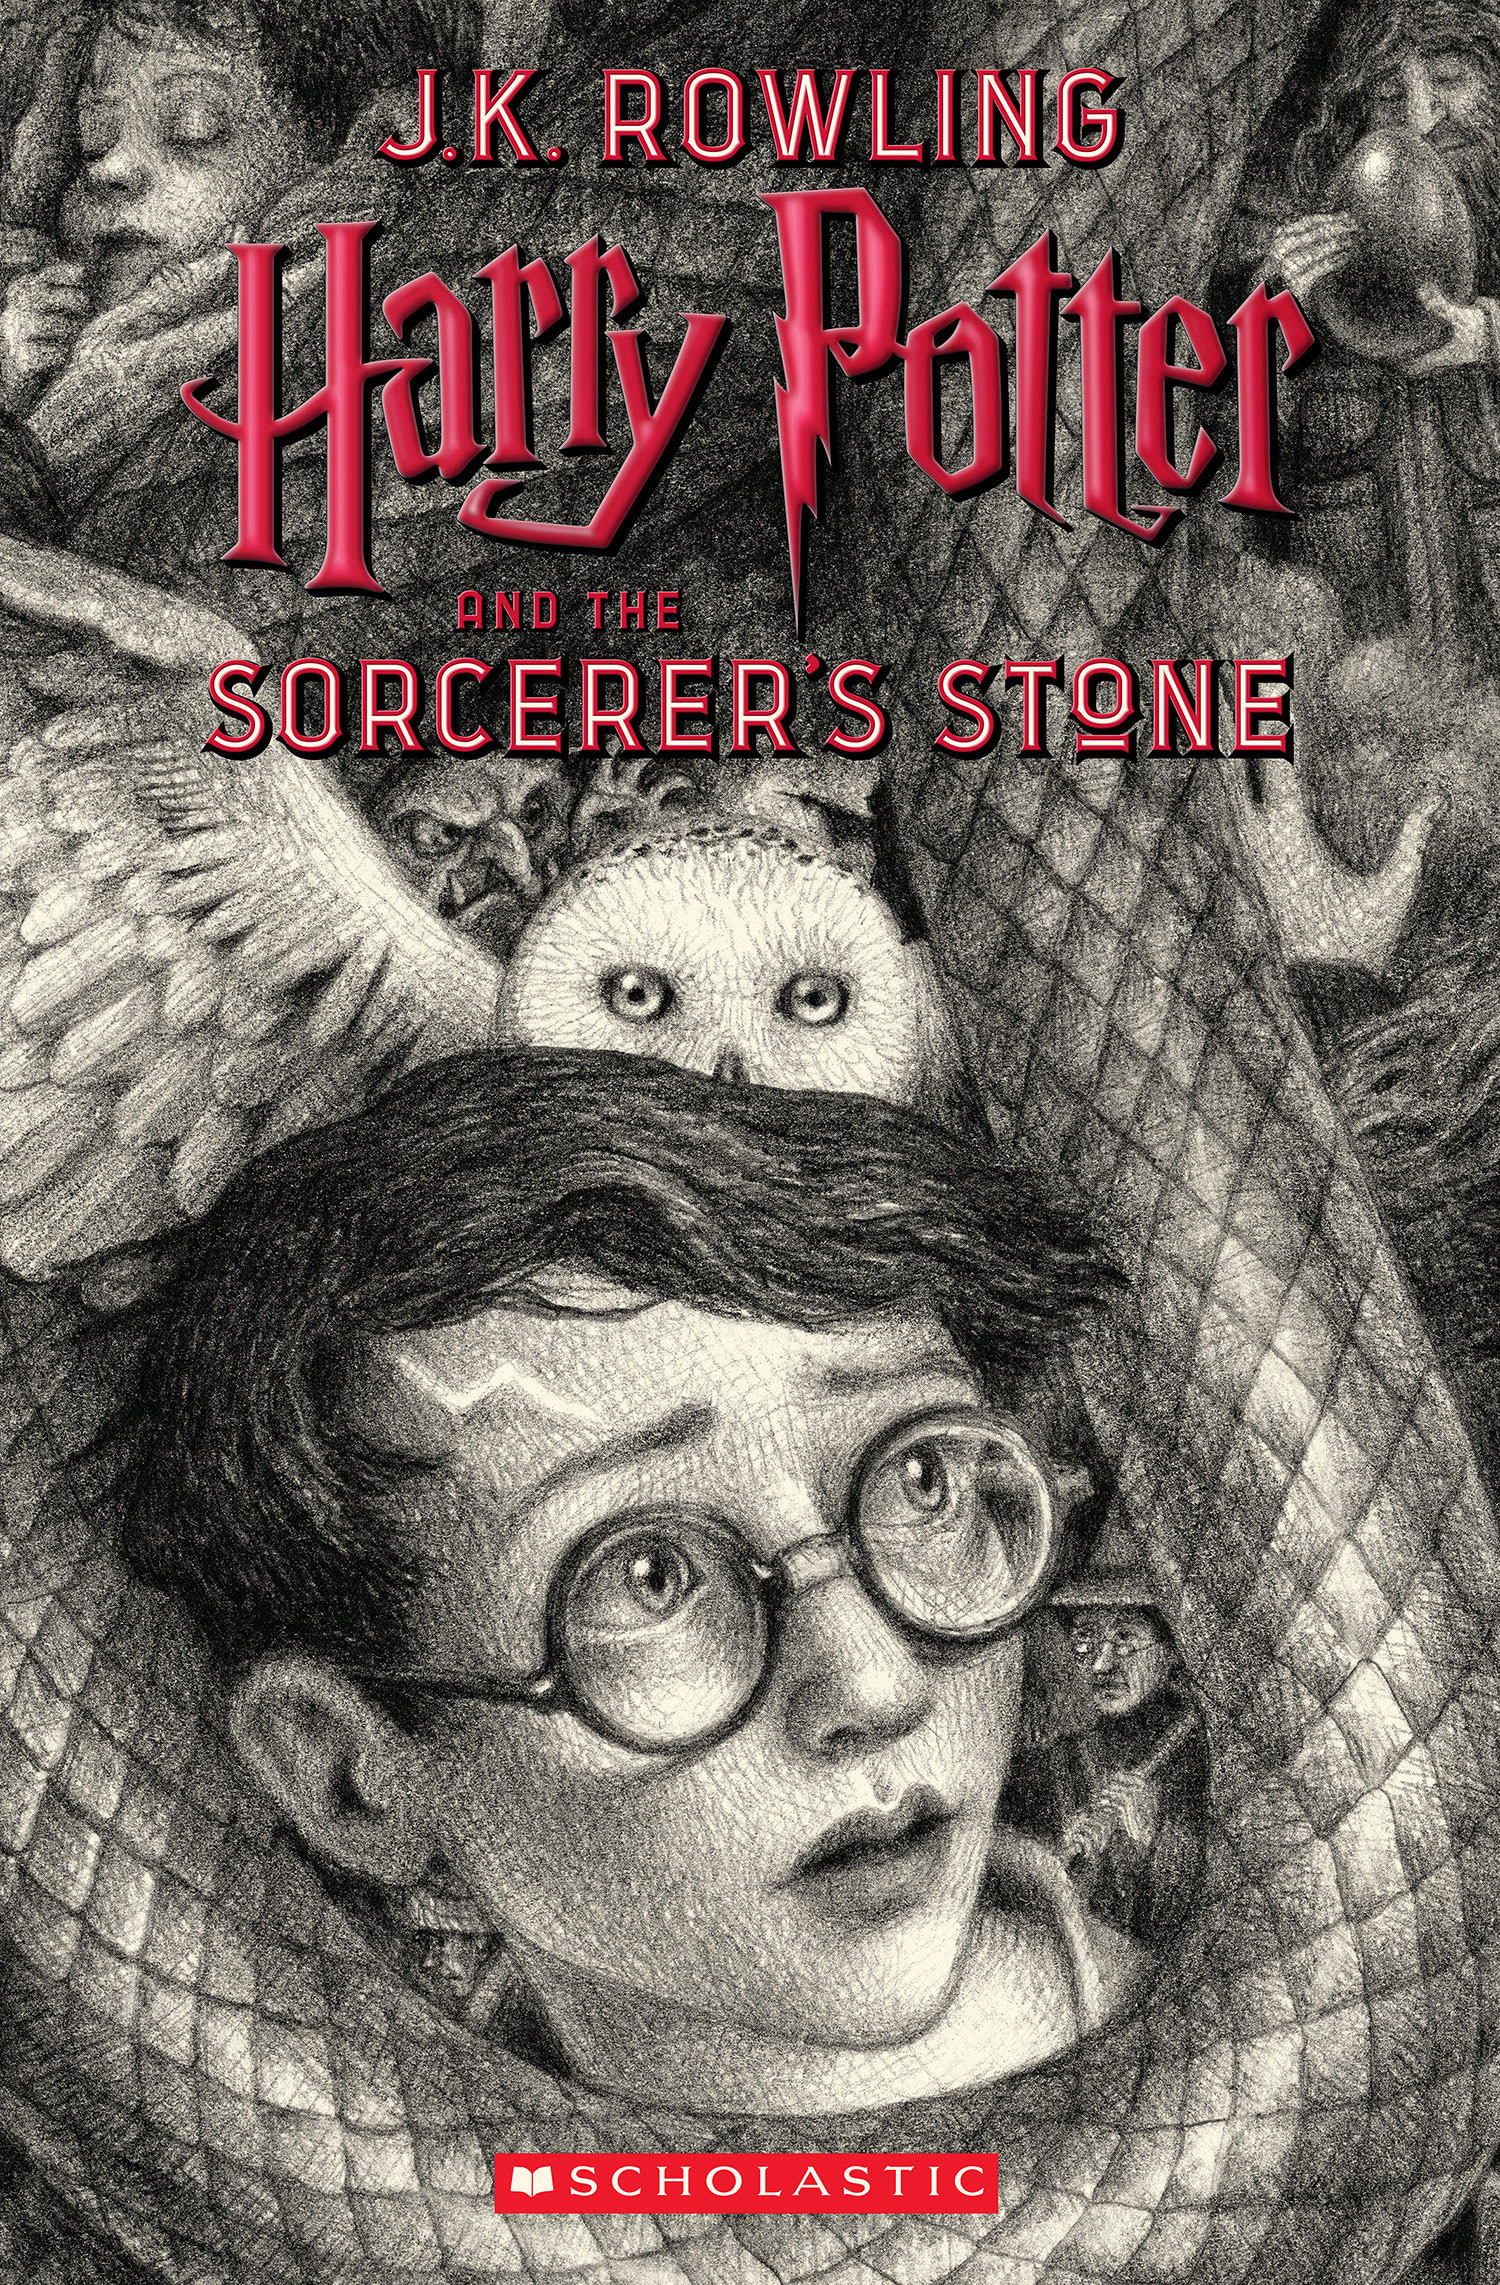 'Sorcerer's Stone' US 20th anniversary edition